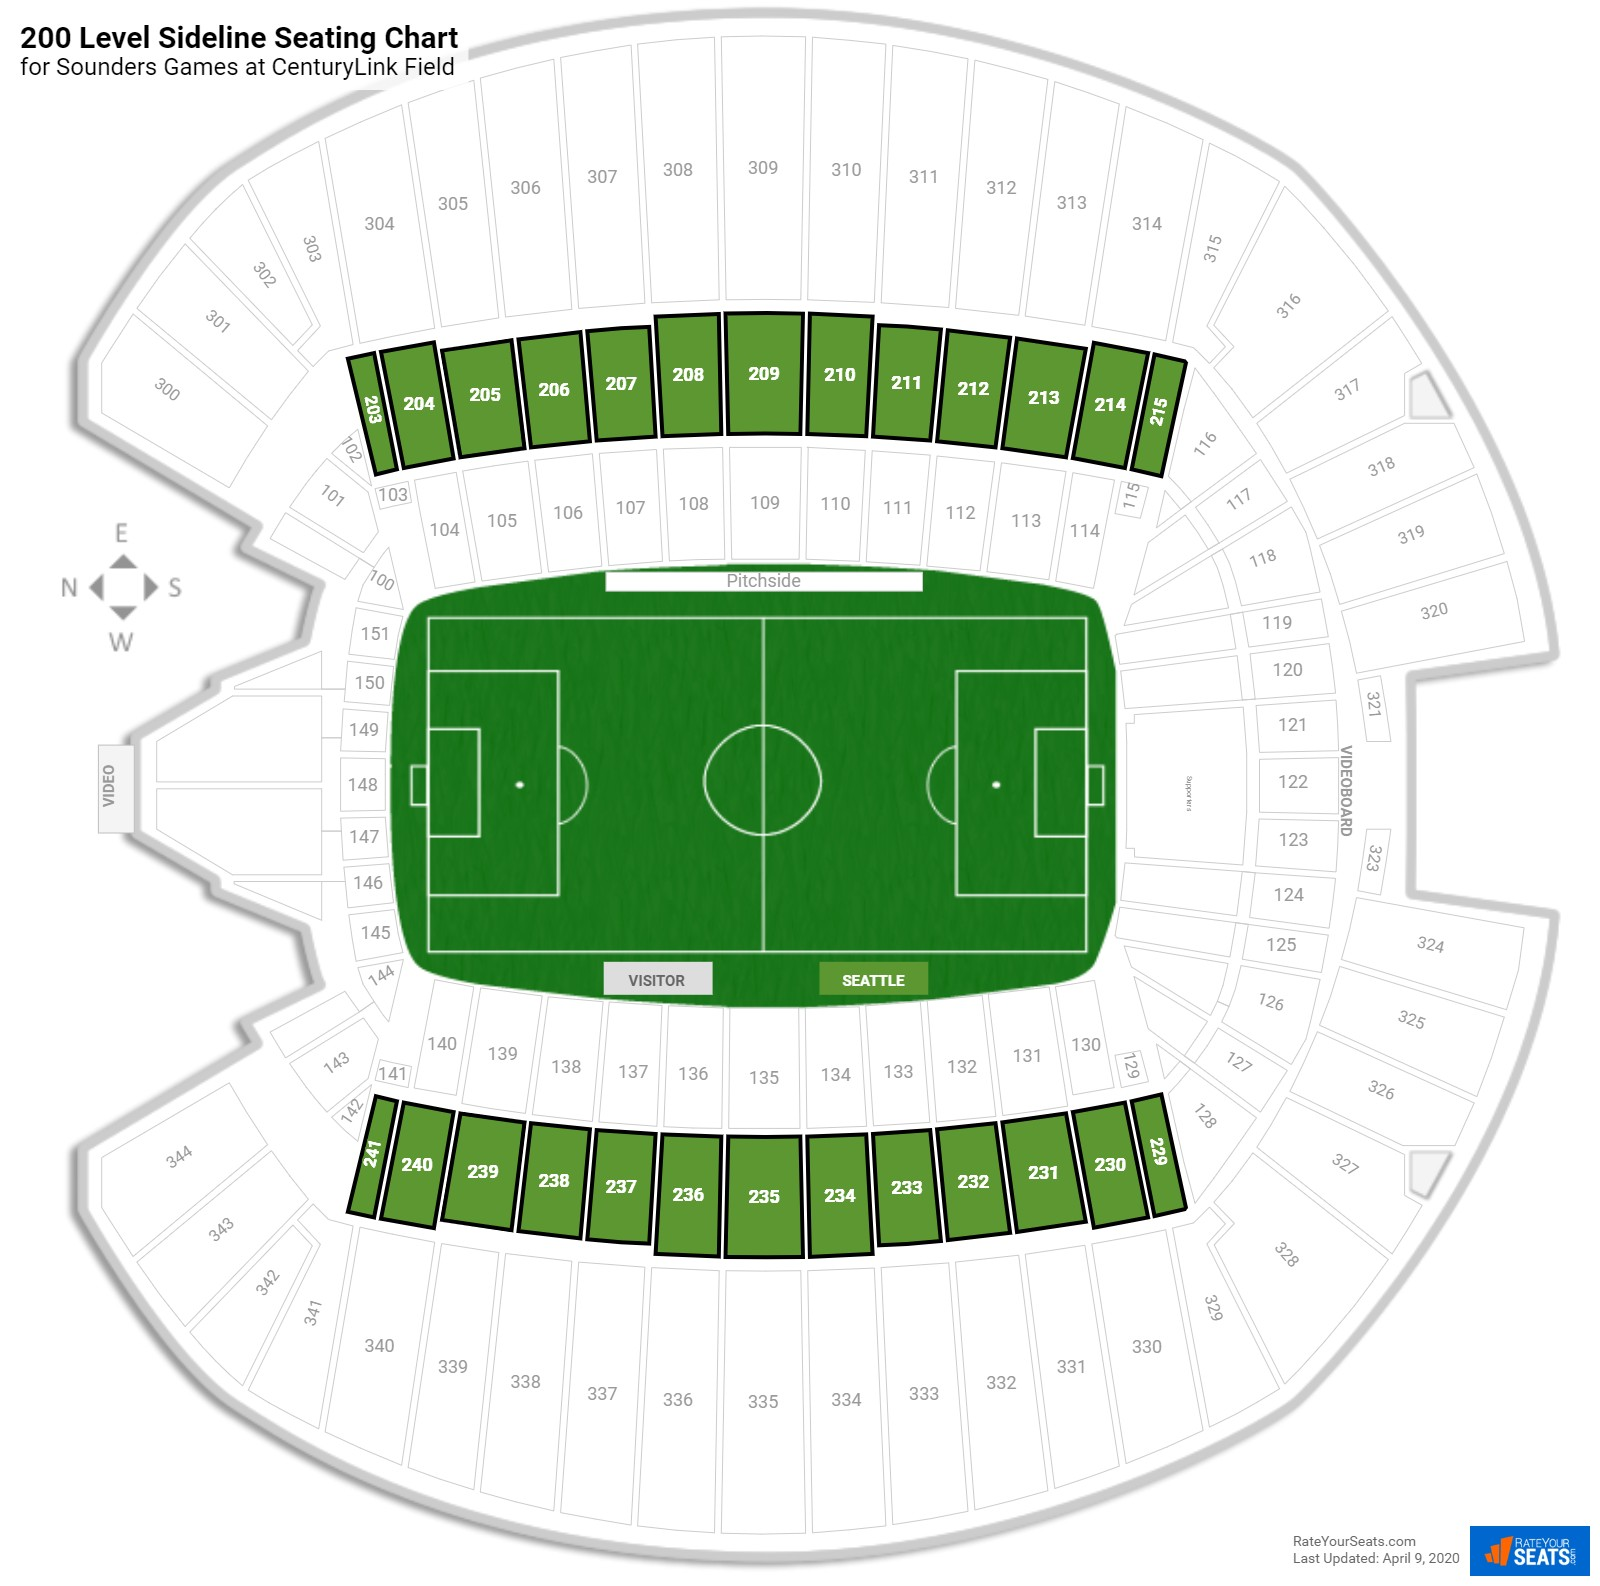 CenturyLink Field 200 Level Sideline Seating Chart